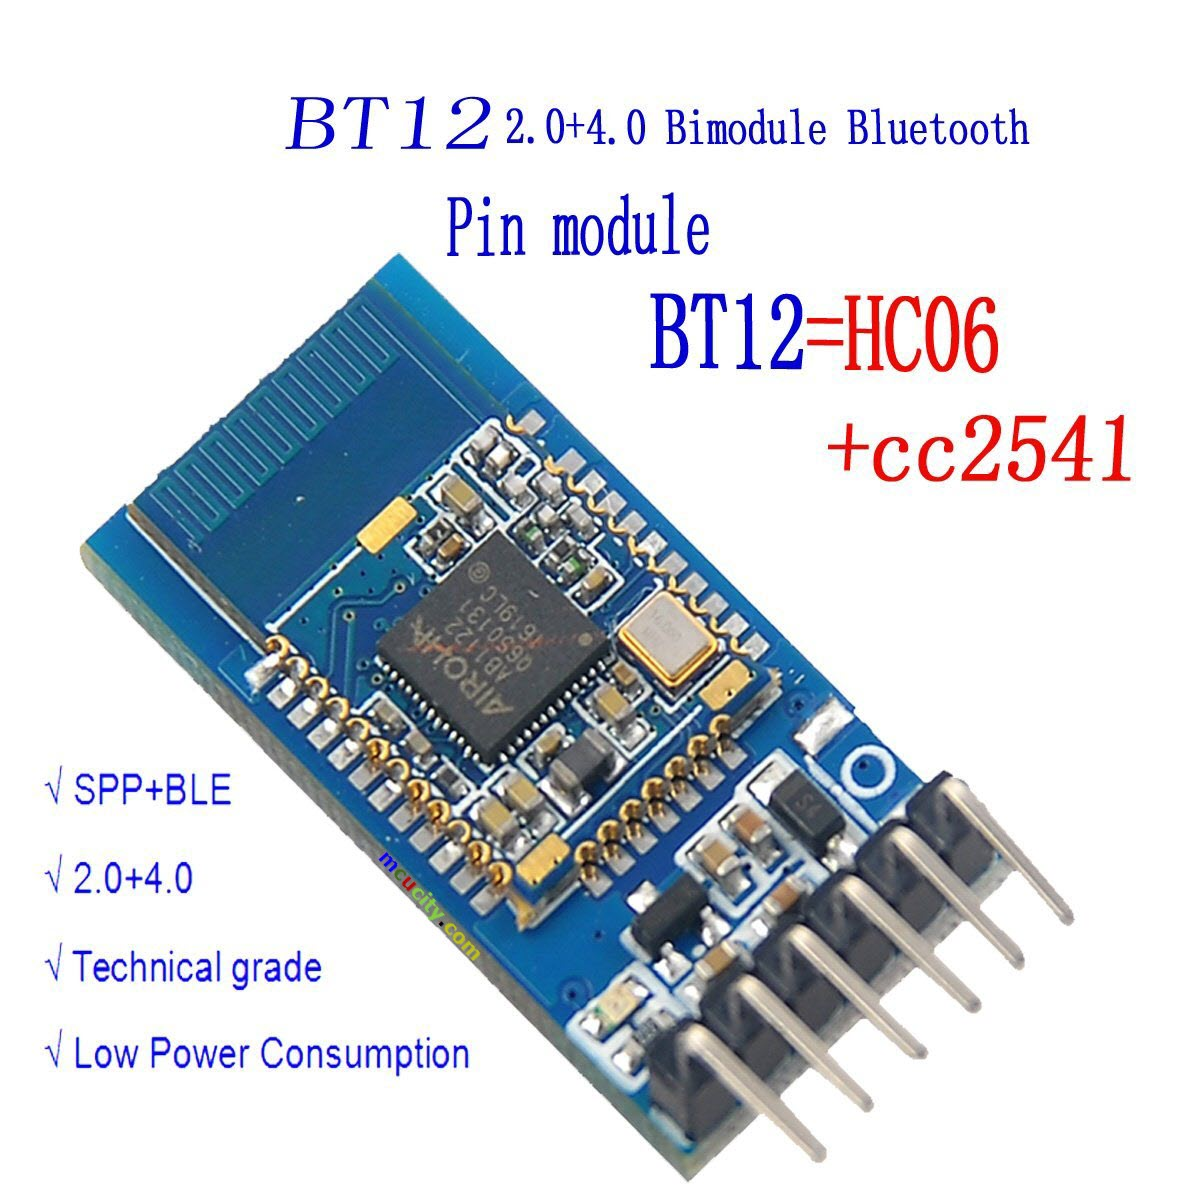 BT12 with Bluetooth Bluetooth dual-mode serial port BLE4 0 +2 0 iOS Android  wireless module Replace HC-05 HC-06 CC2541